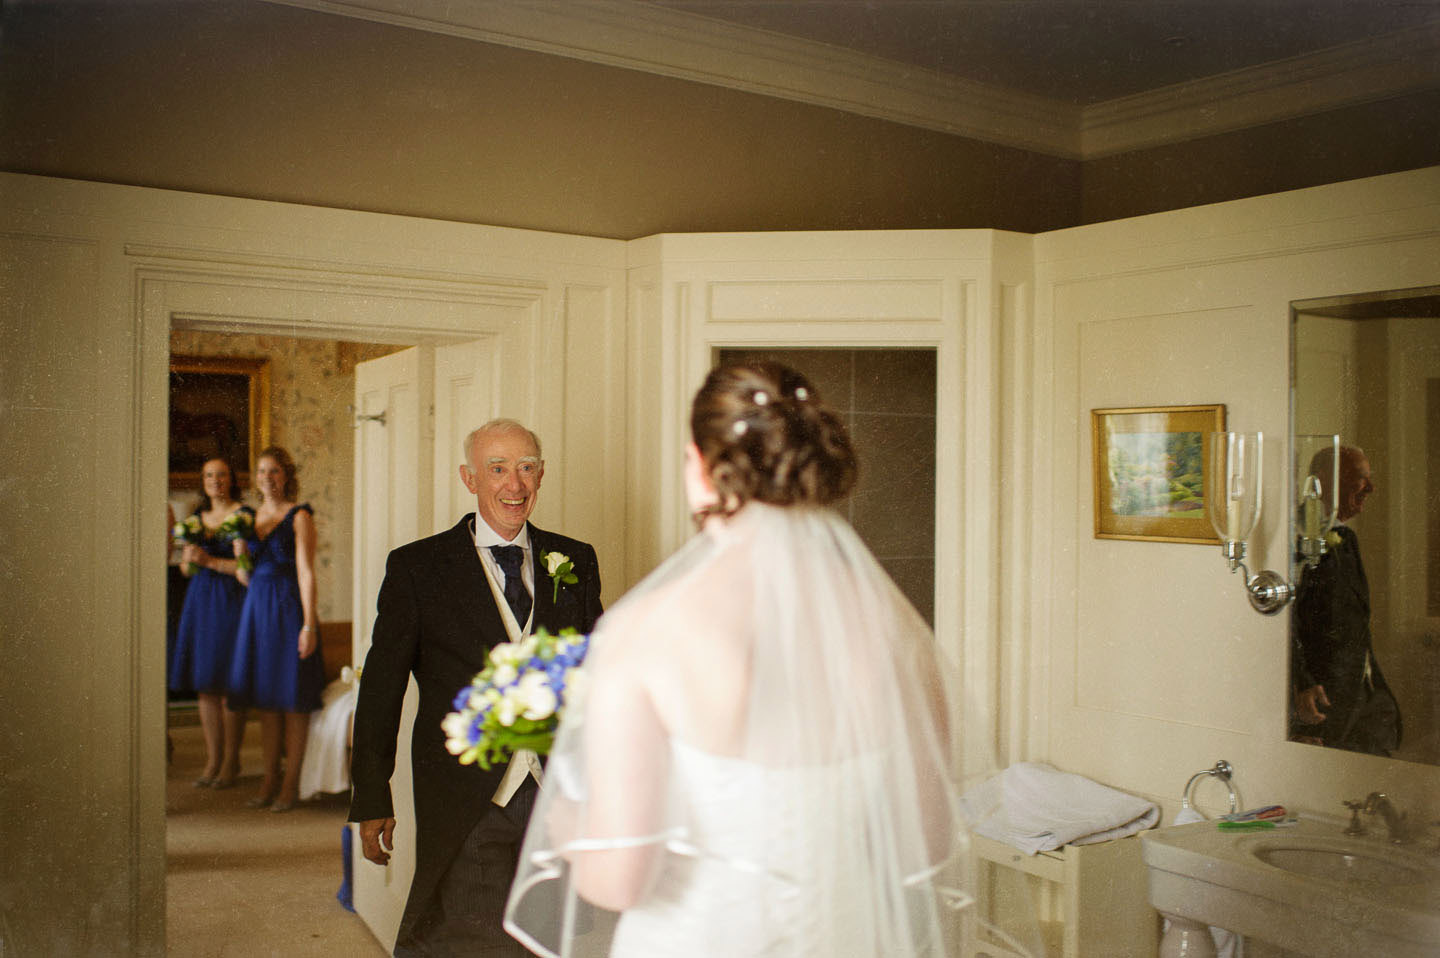 hodsock-priory-wedding-photo father daughter001.jpg